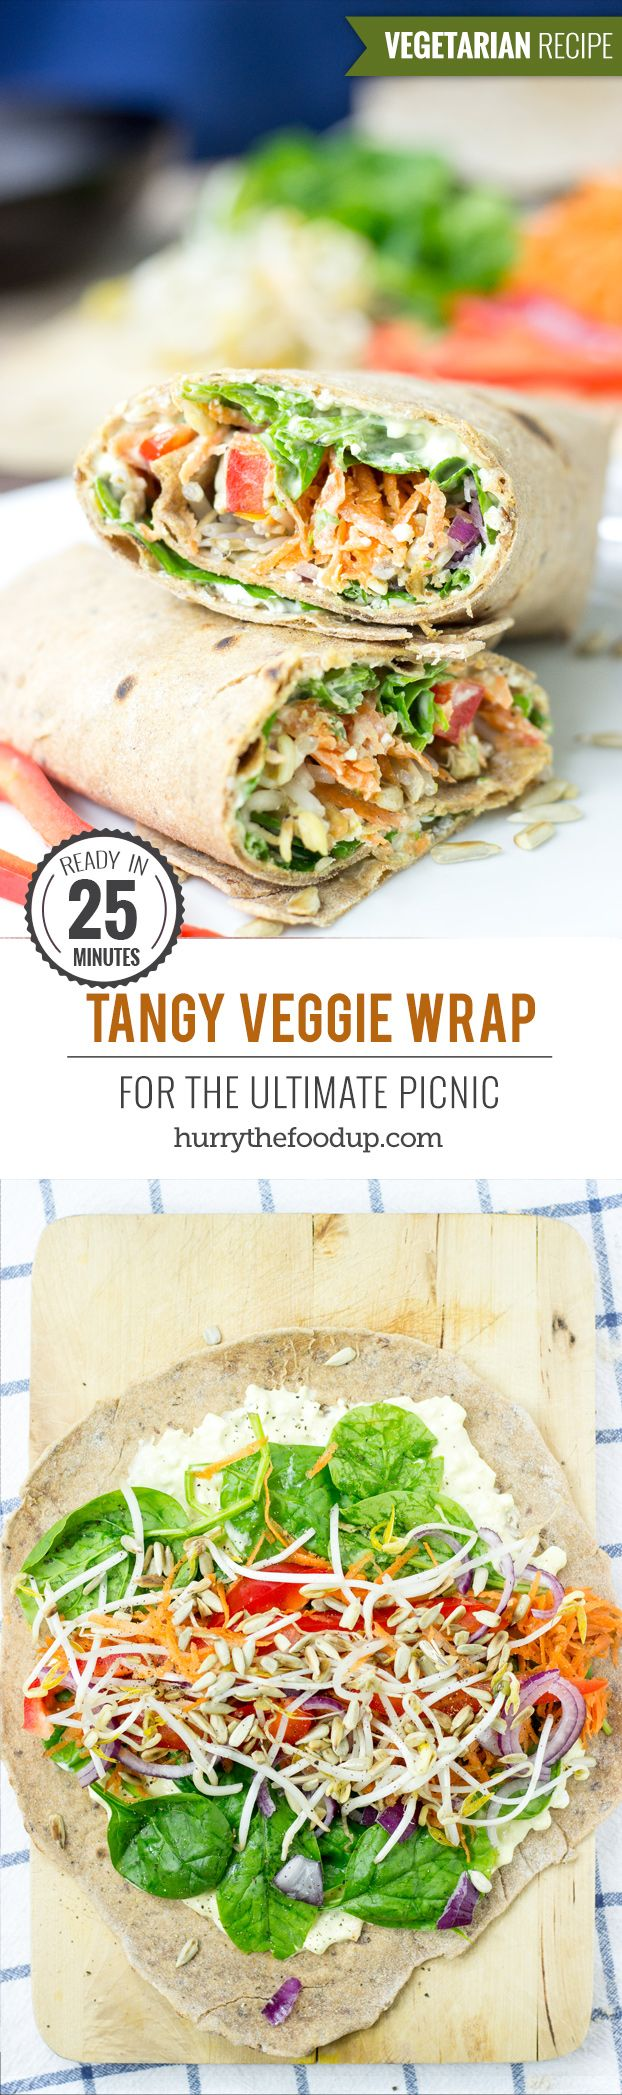 Tangy Veggie Wrap #Picnic #Vegetarian #Wrap #Delicious #Cheese #Vegetables #Veggies